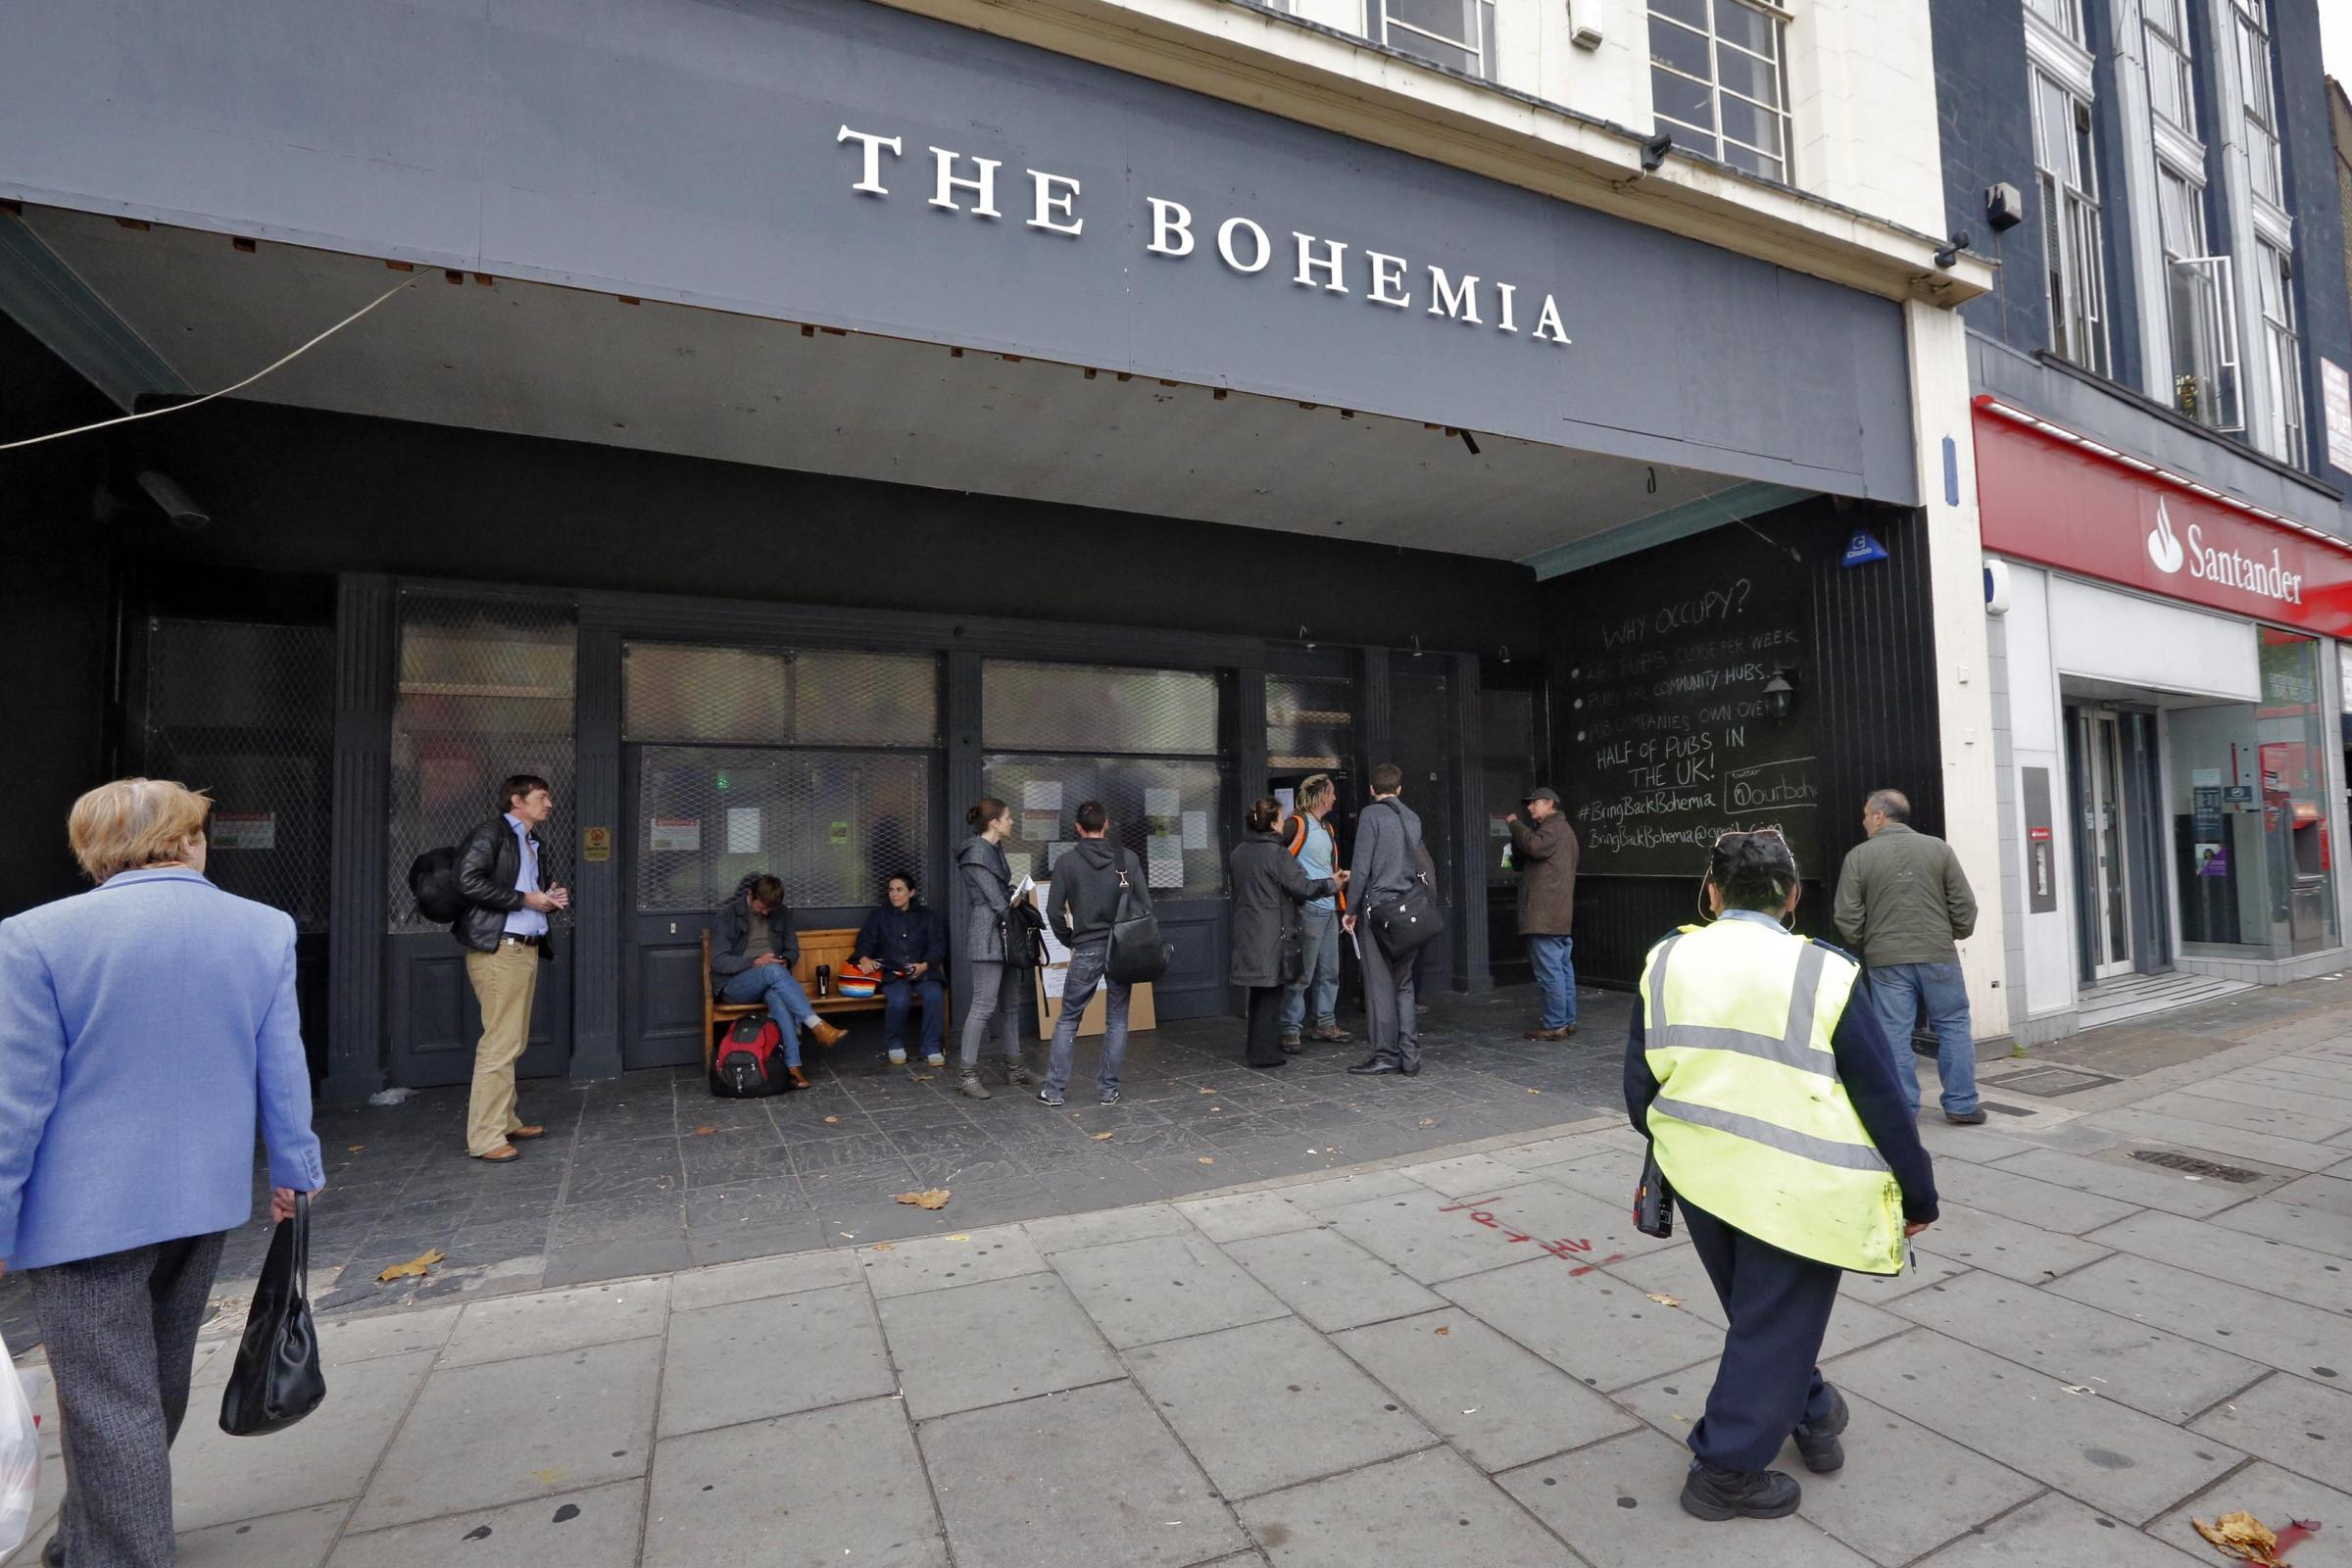 'It was criminal leaving it empty' - excitement as Bohemia pub reopening announced